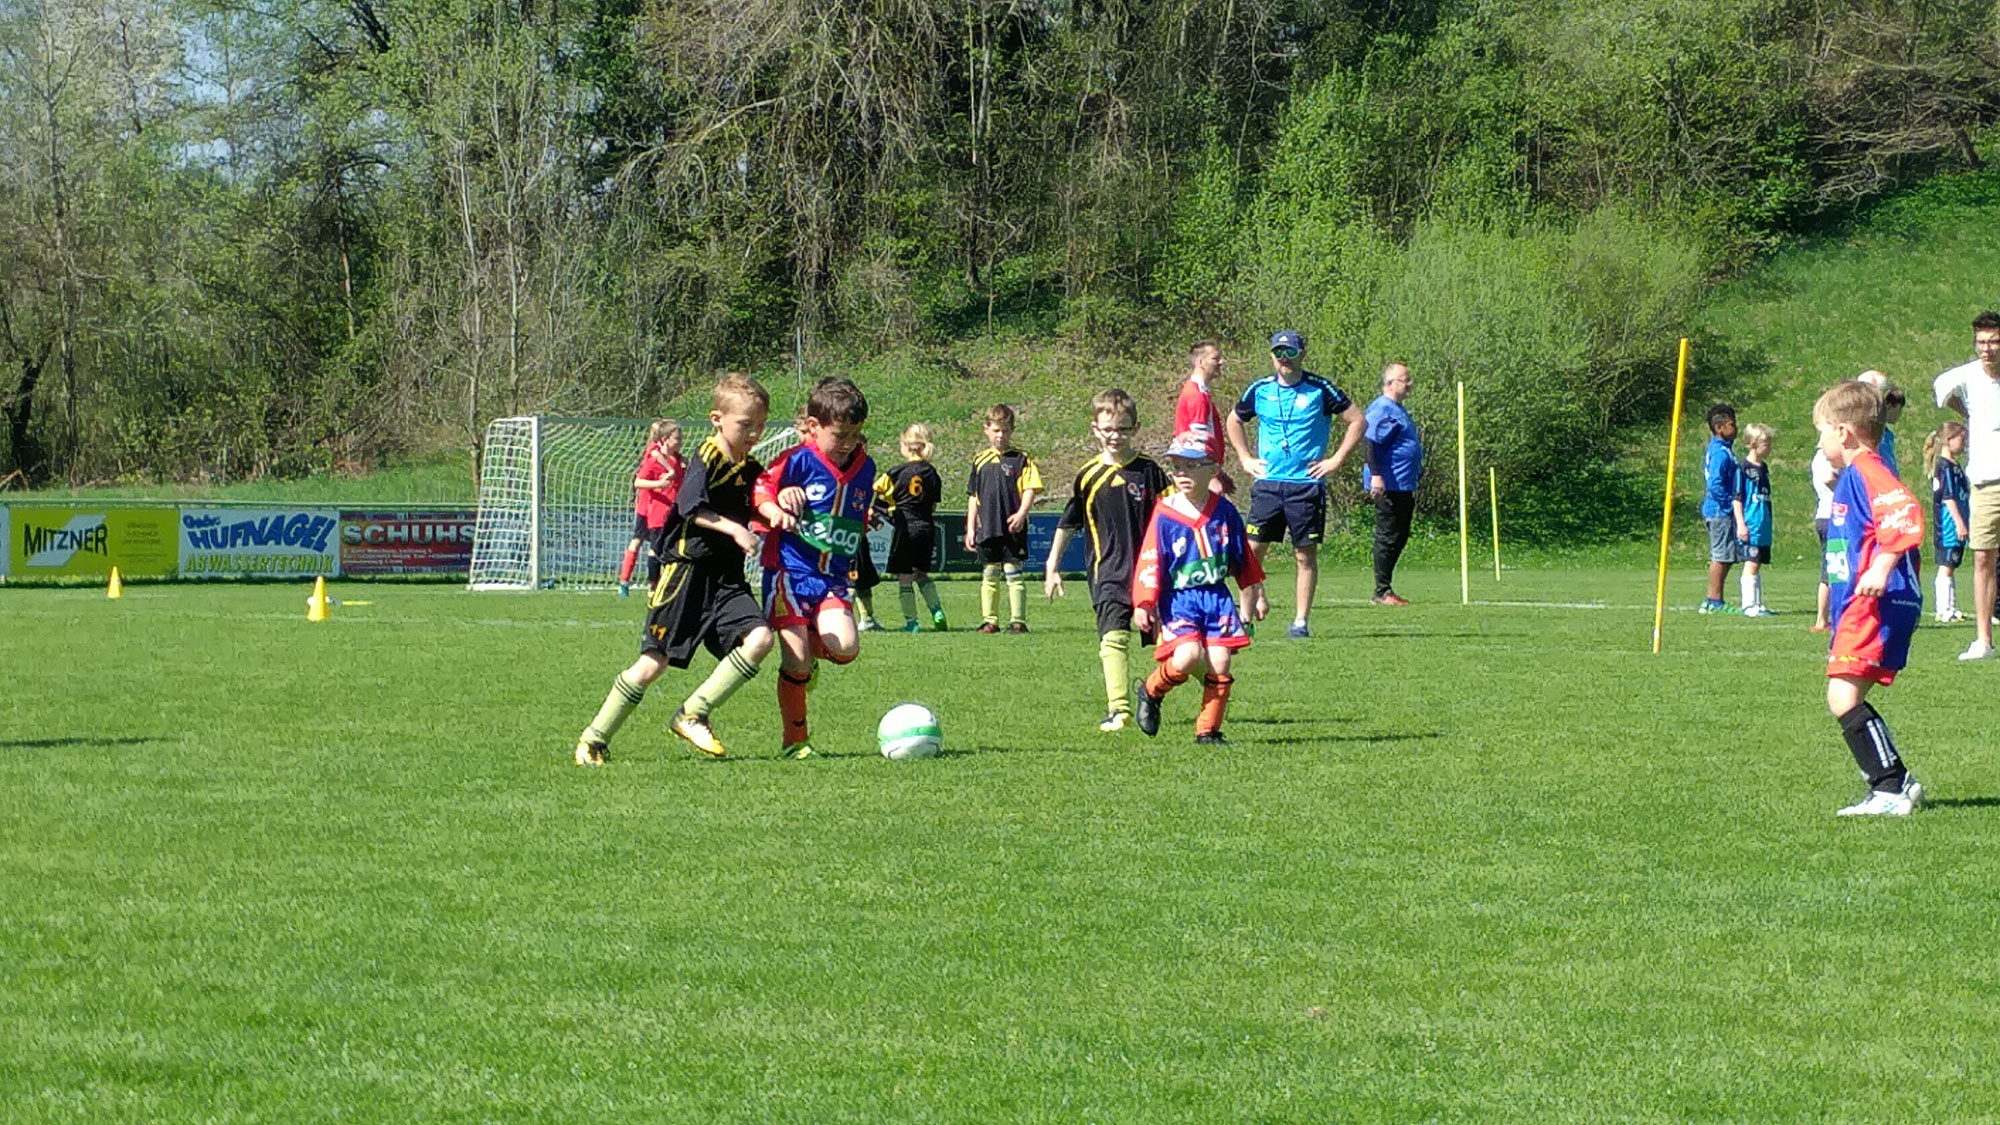 FUSSBALL SOMMERCAMP 2021